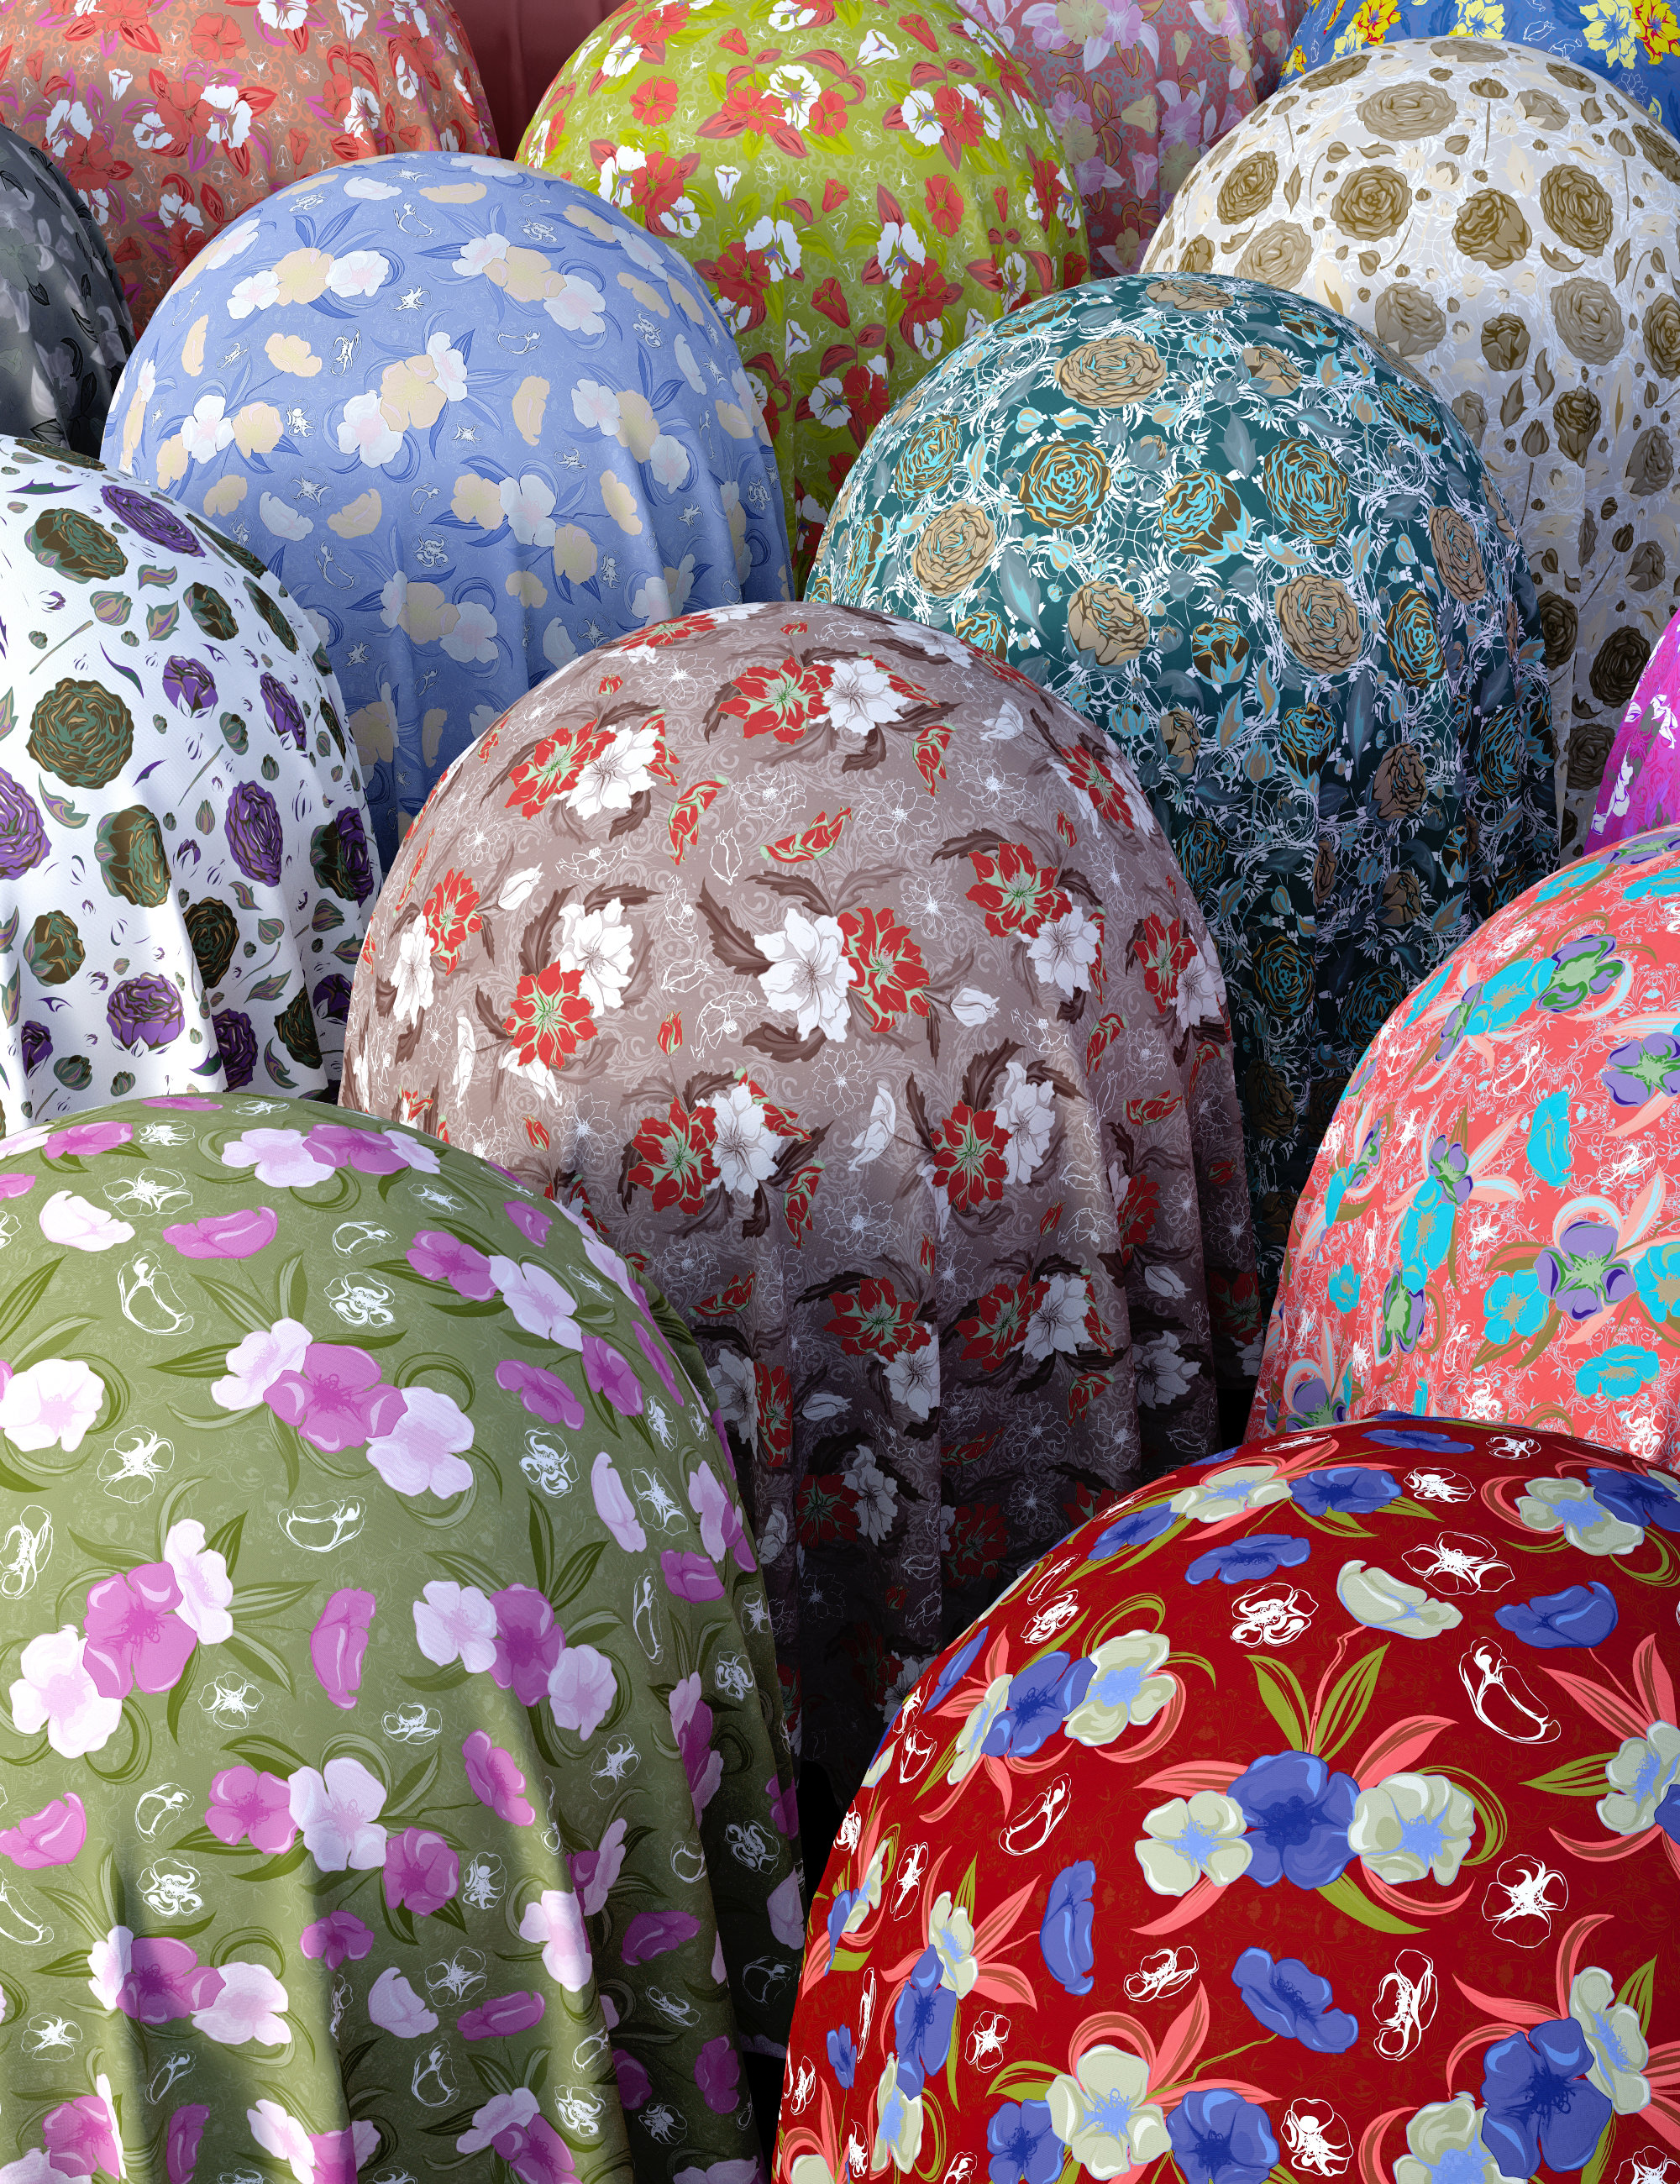 Summer Floral Fabric Iray Shaders by: Nelmi, 3D Models by Daz 3D